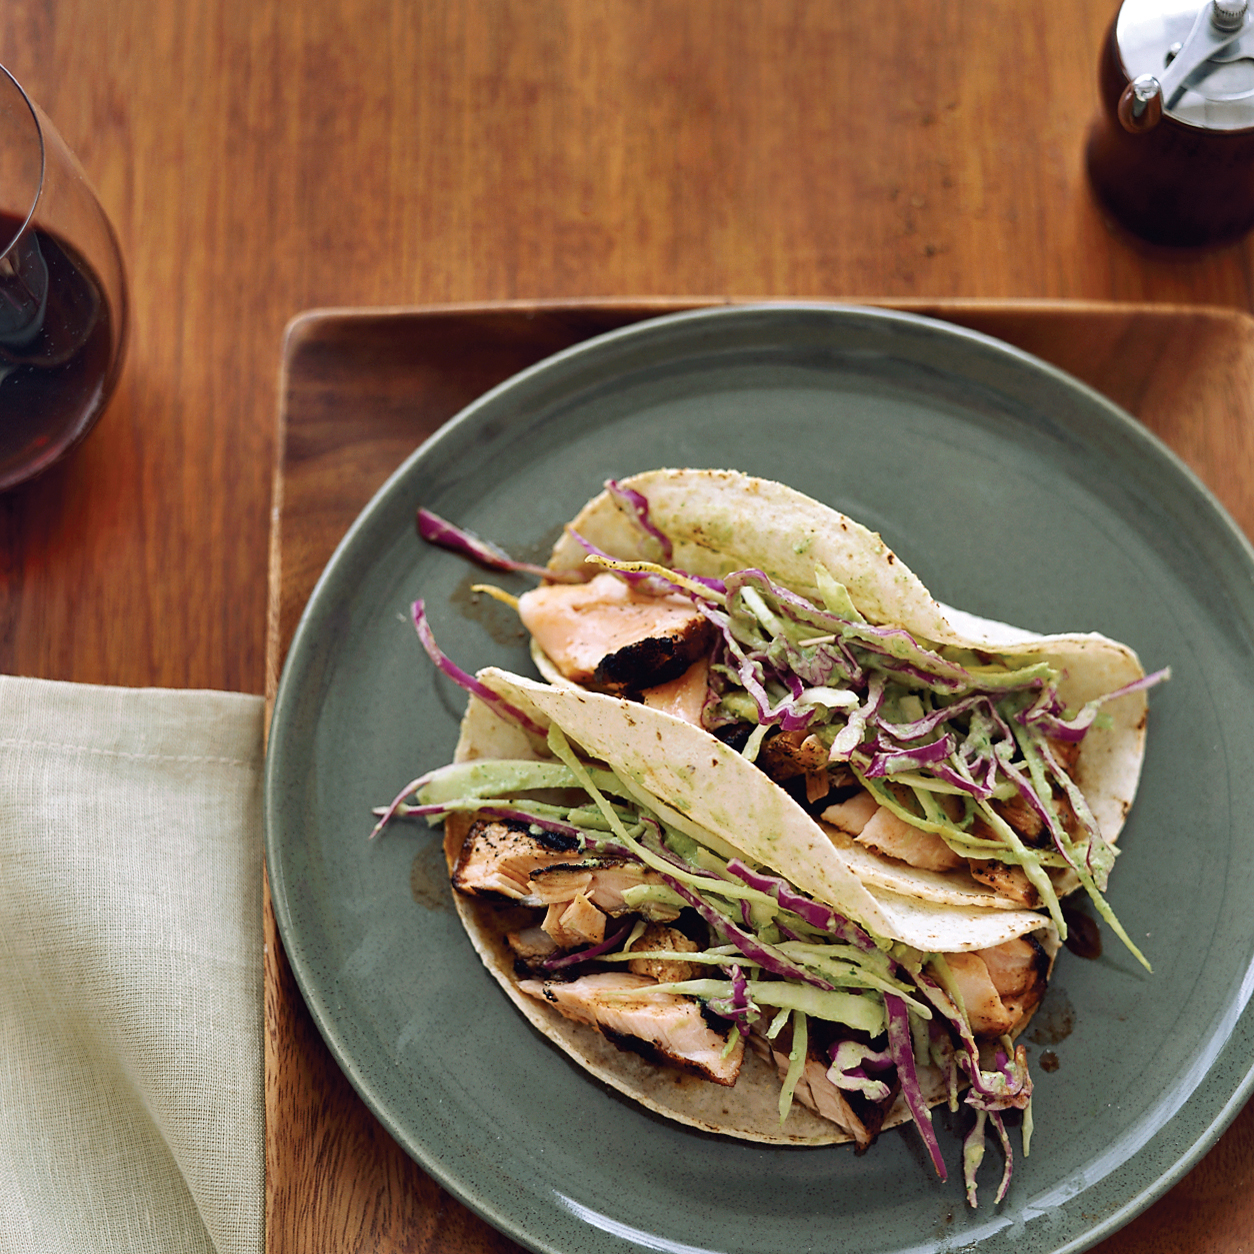 Dry-Rubbed Salmon Tacos with Tomatillo-Avocado Slaw